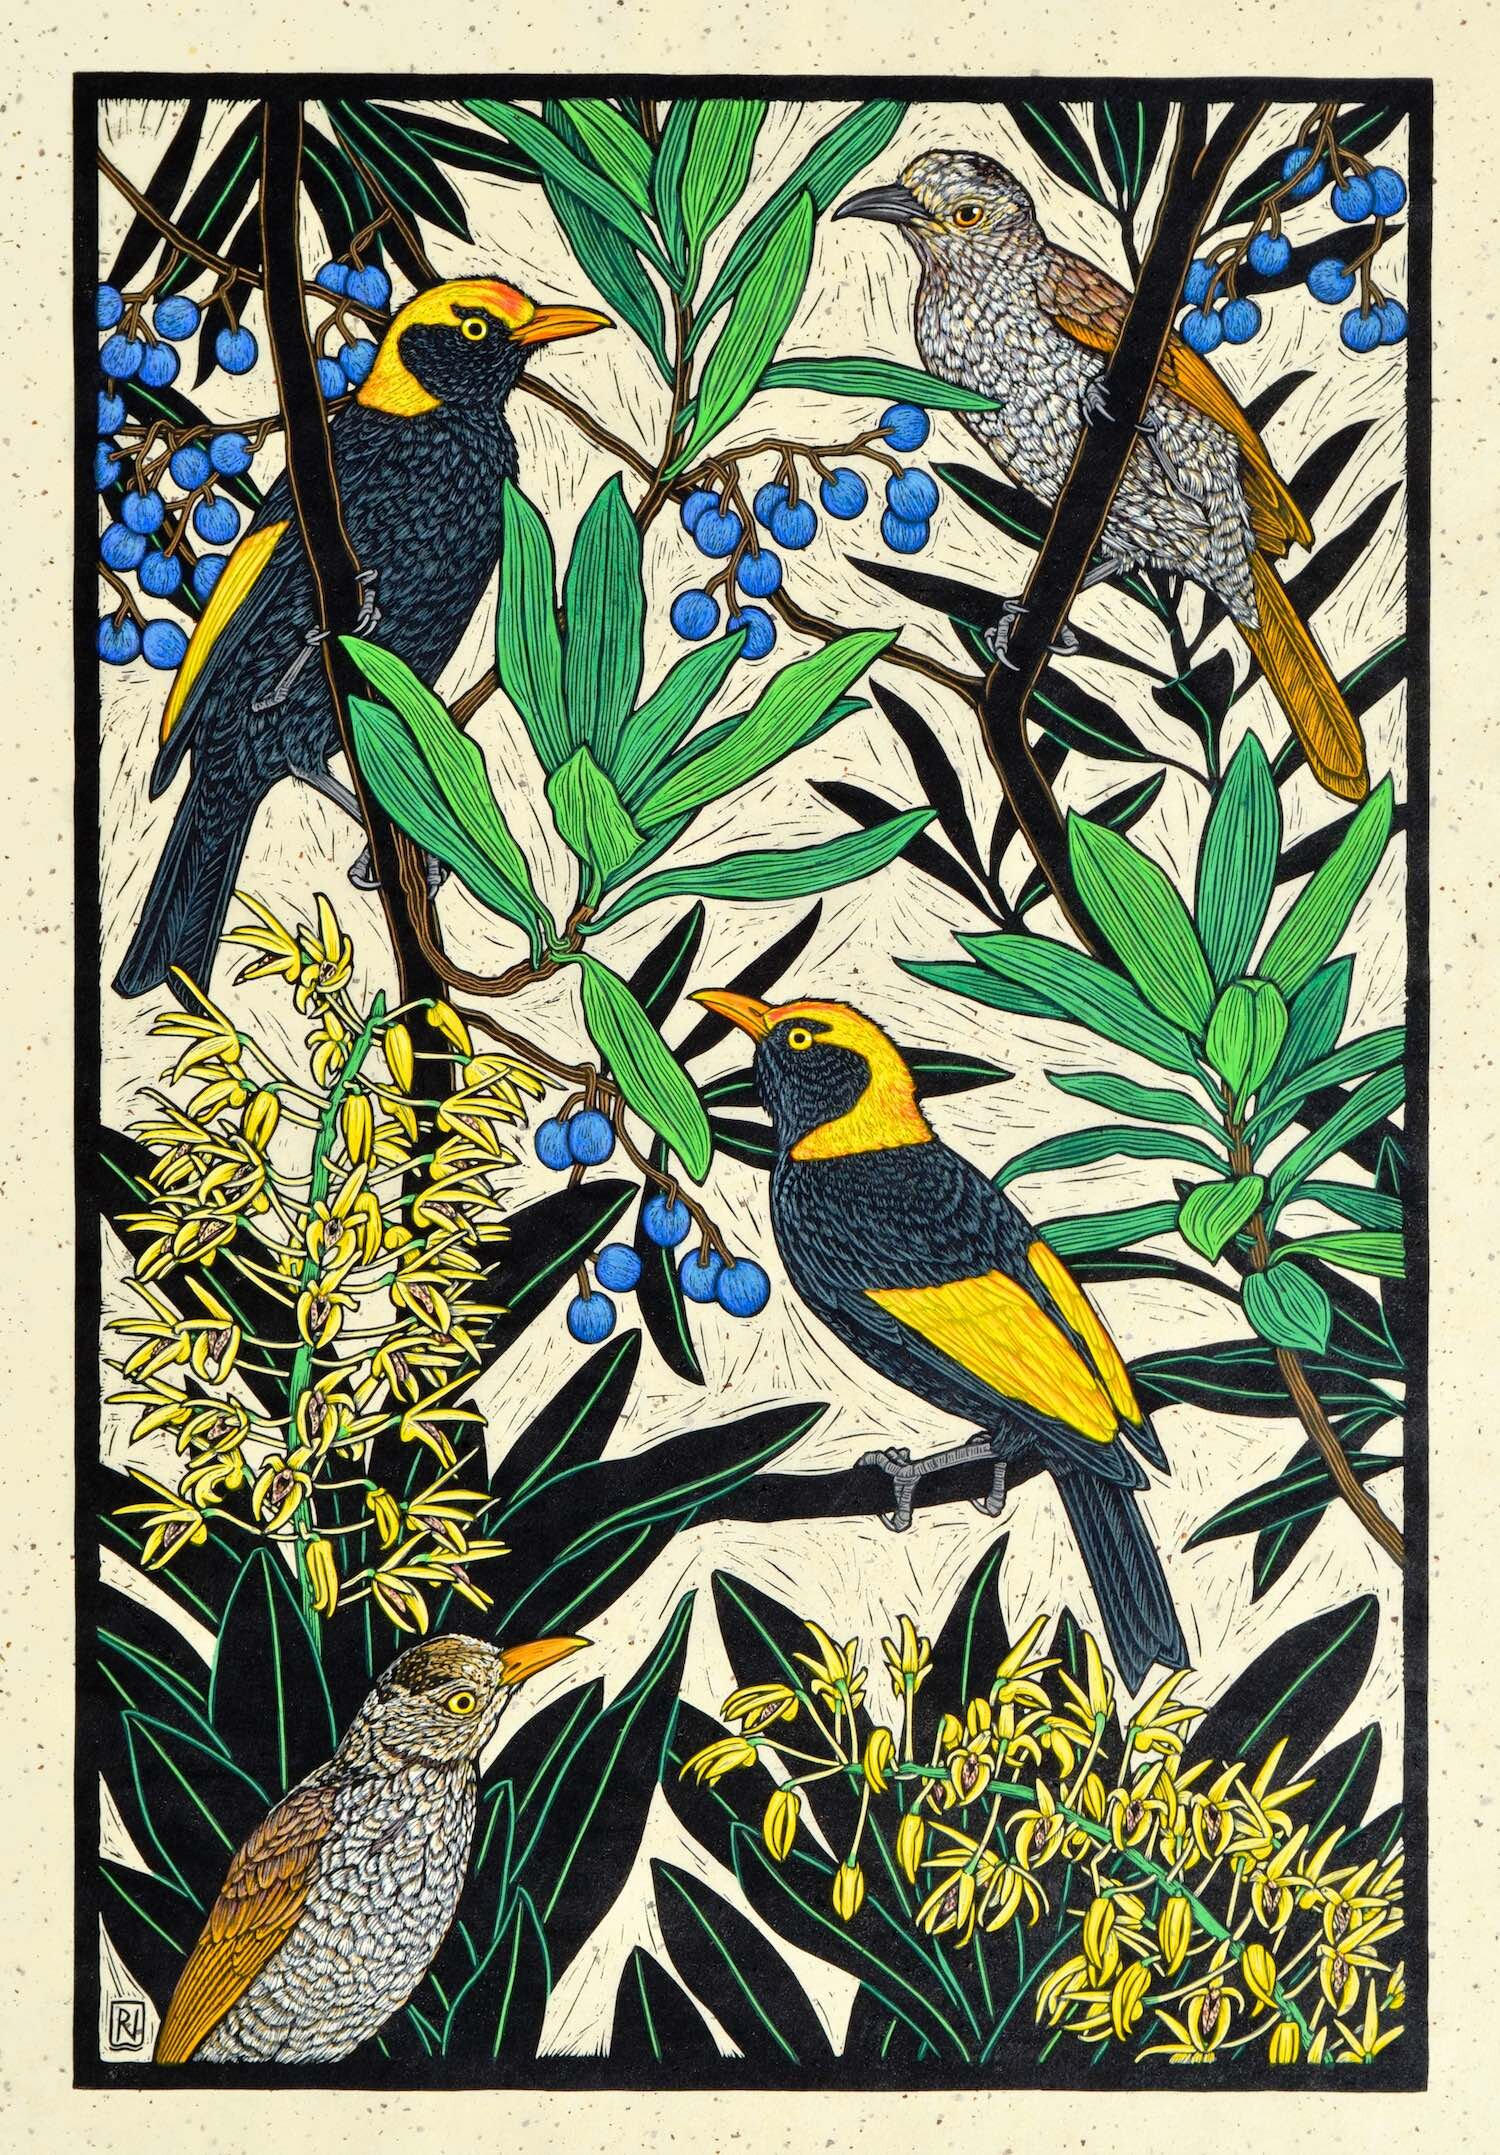 Regent Bowerbird with rainforest orchid  76 x 51 cm, Edition of 50  Hand-coloured linocut on handmade Japanese paper  $1,700